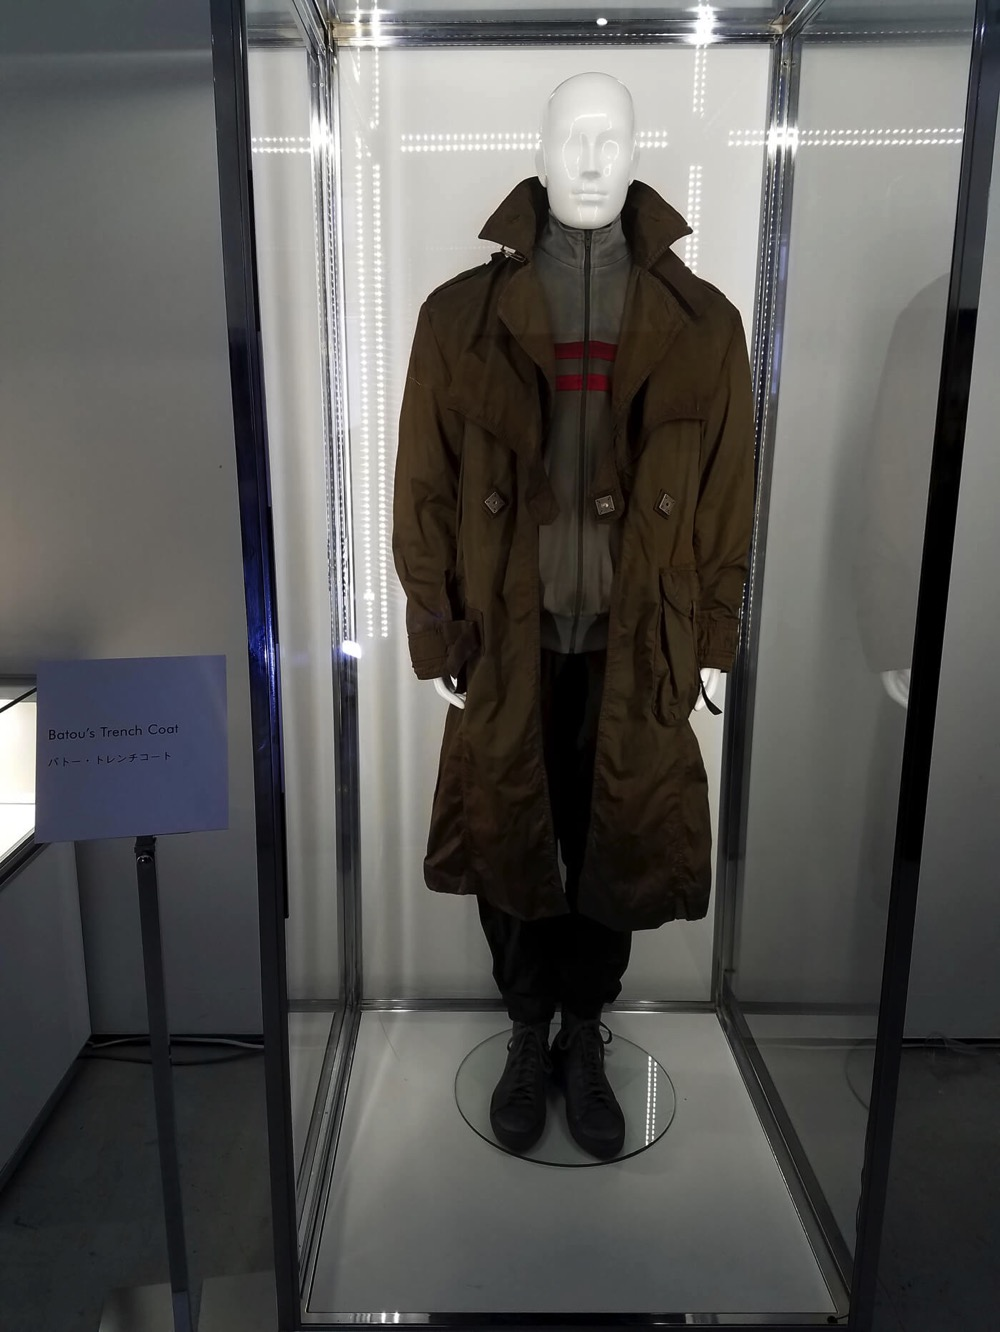 Ghost in the shell batou trench coat 1 copy